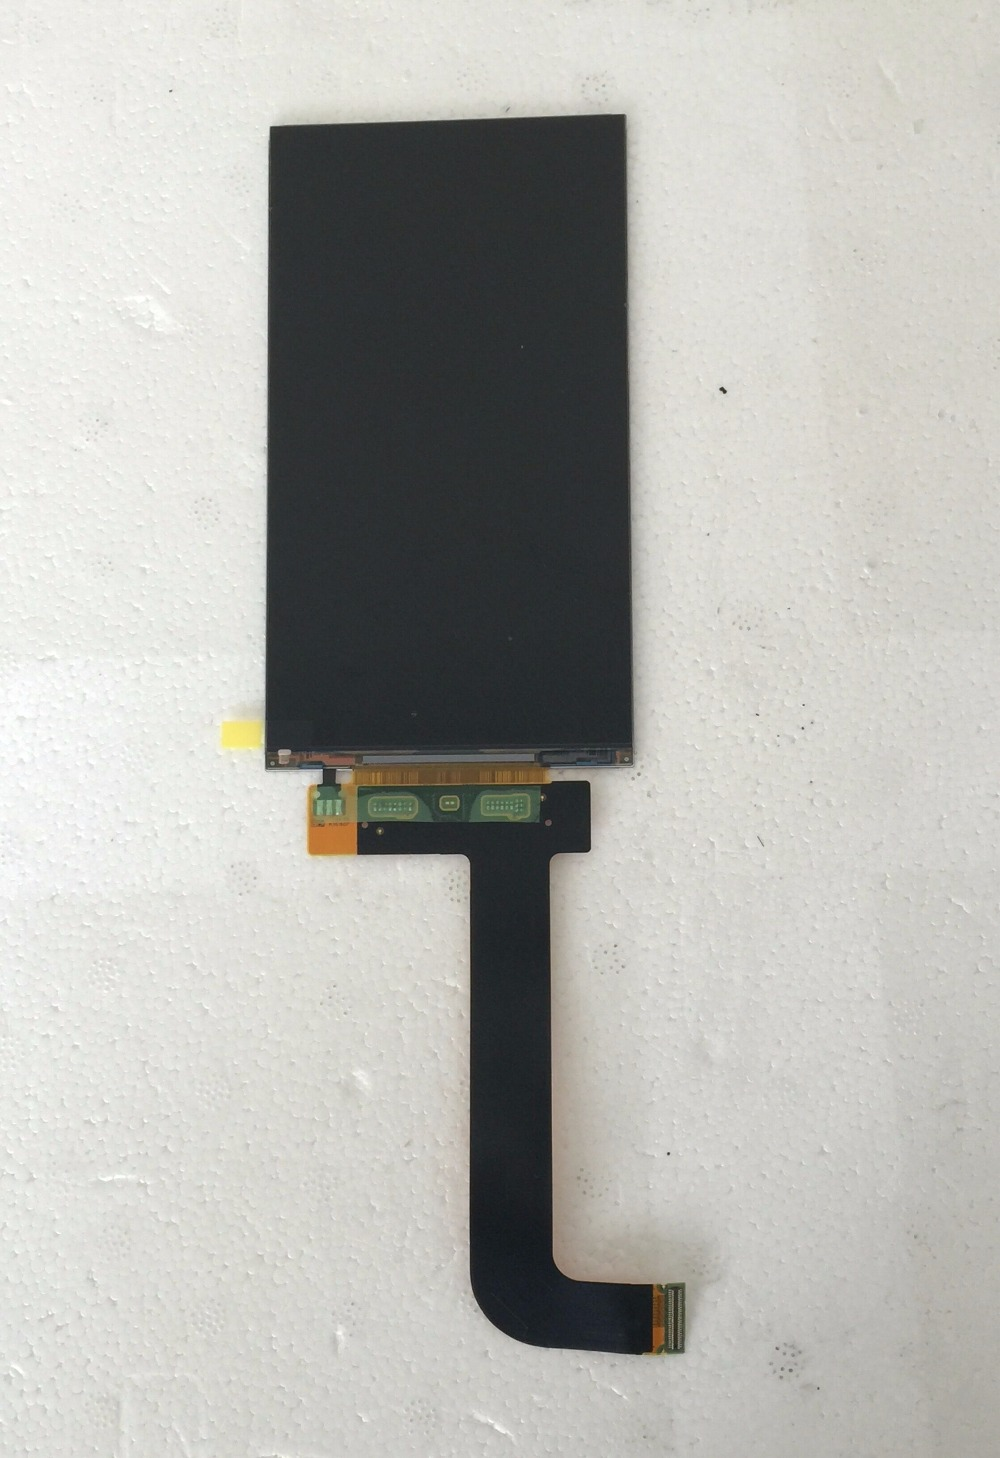 5.5 Inch 2k LCD Module 2560*1440 LS055R1SX03 Light Curing Display Screen for lcd 3d Printer Projector Parts r20(China)